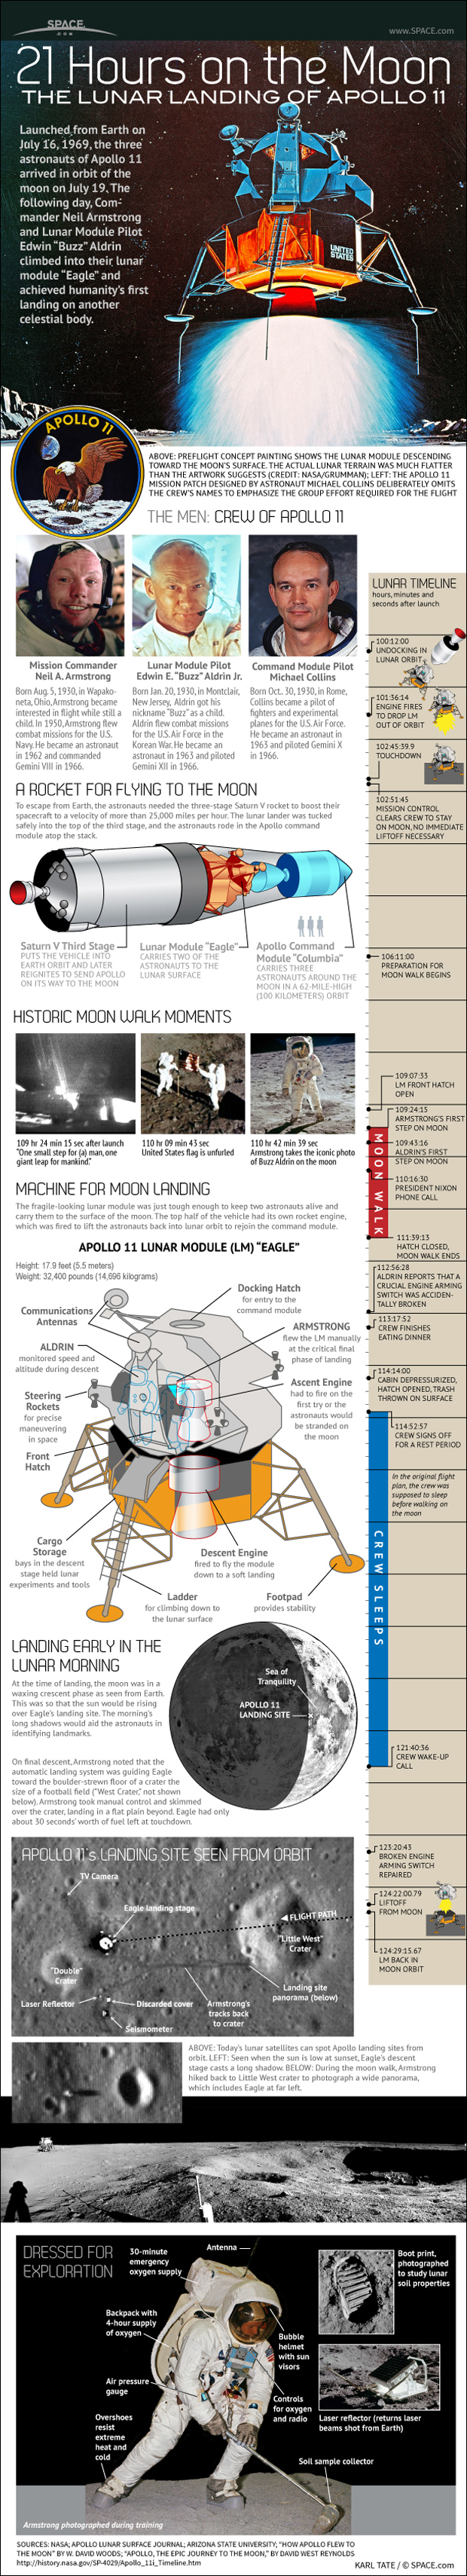 How the Apollo 11 Mission Worked (Infographic)